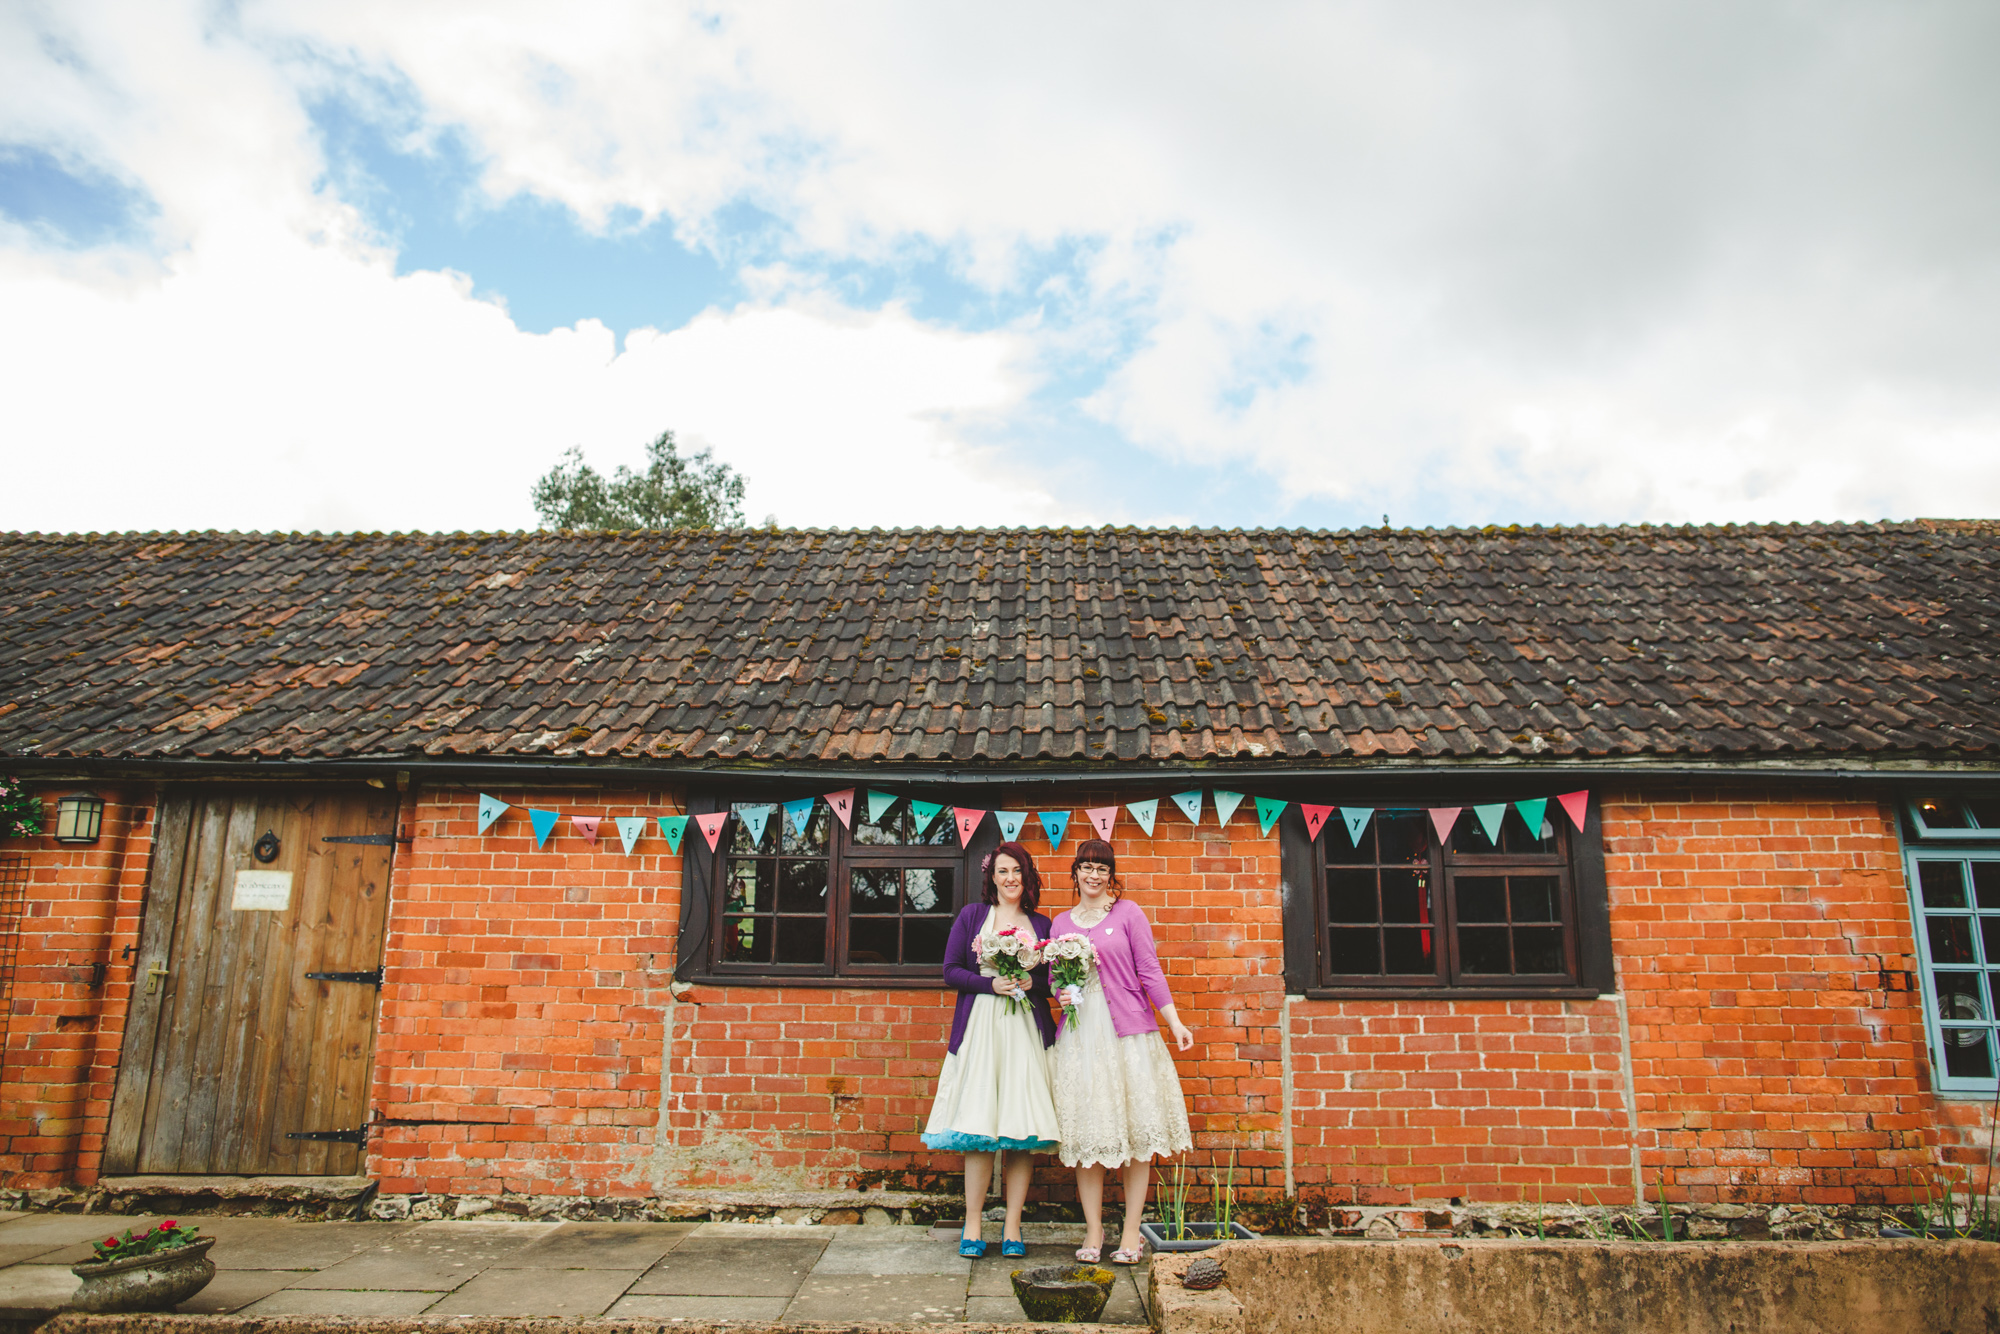 same sex wedding couple in fifties style dresses with petticoats by pretty barn venue